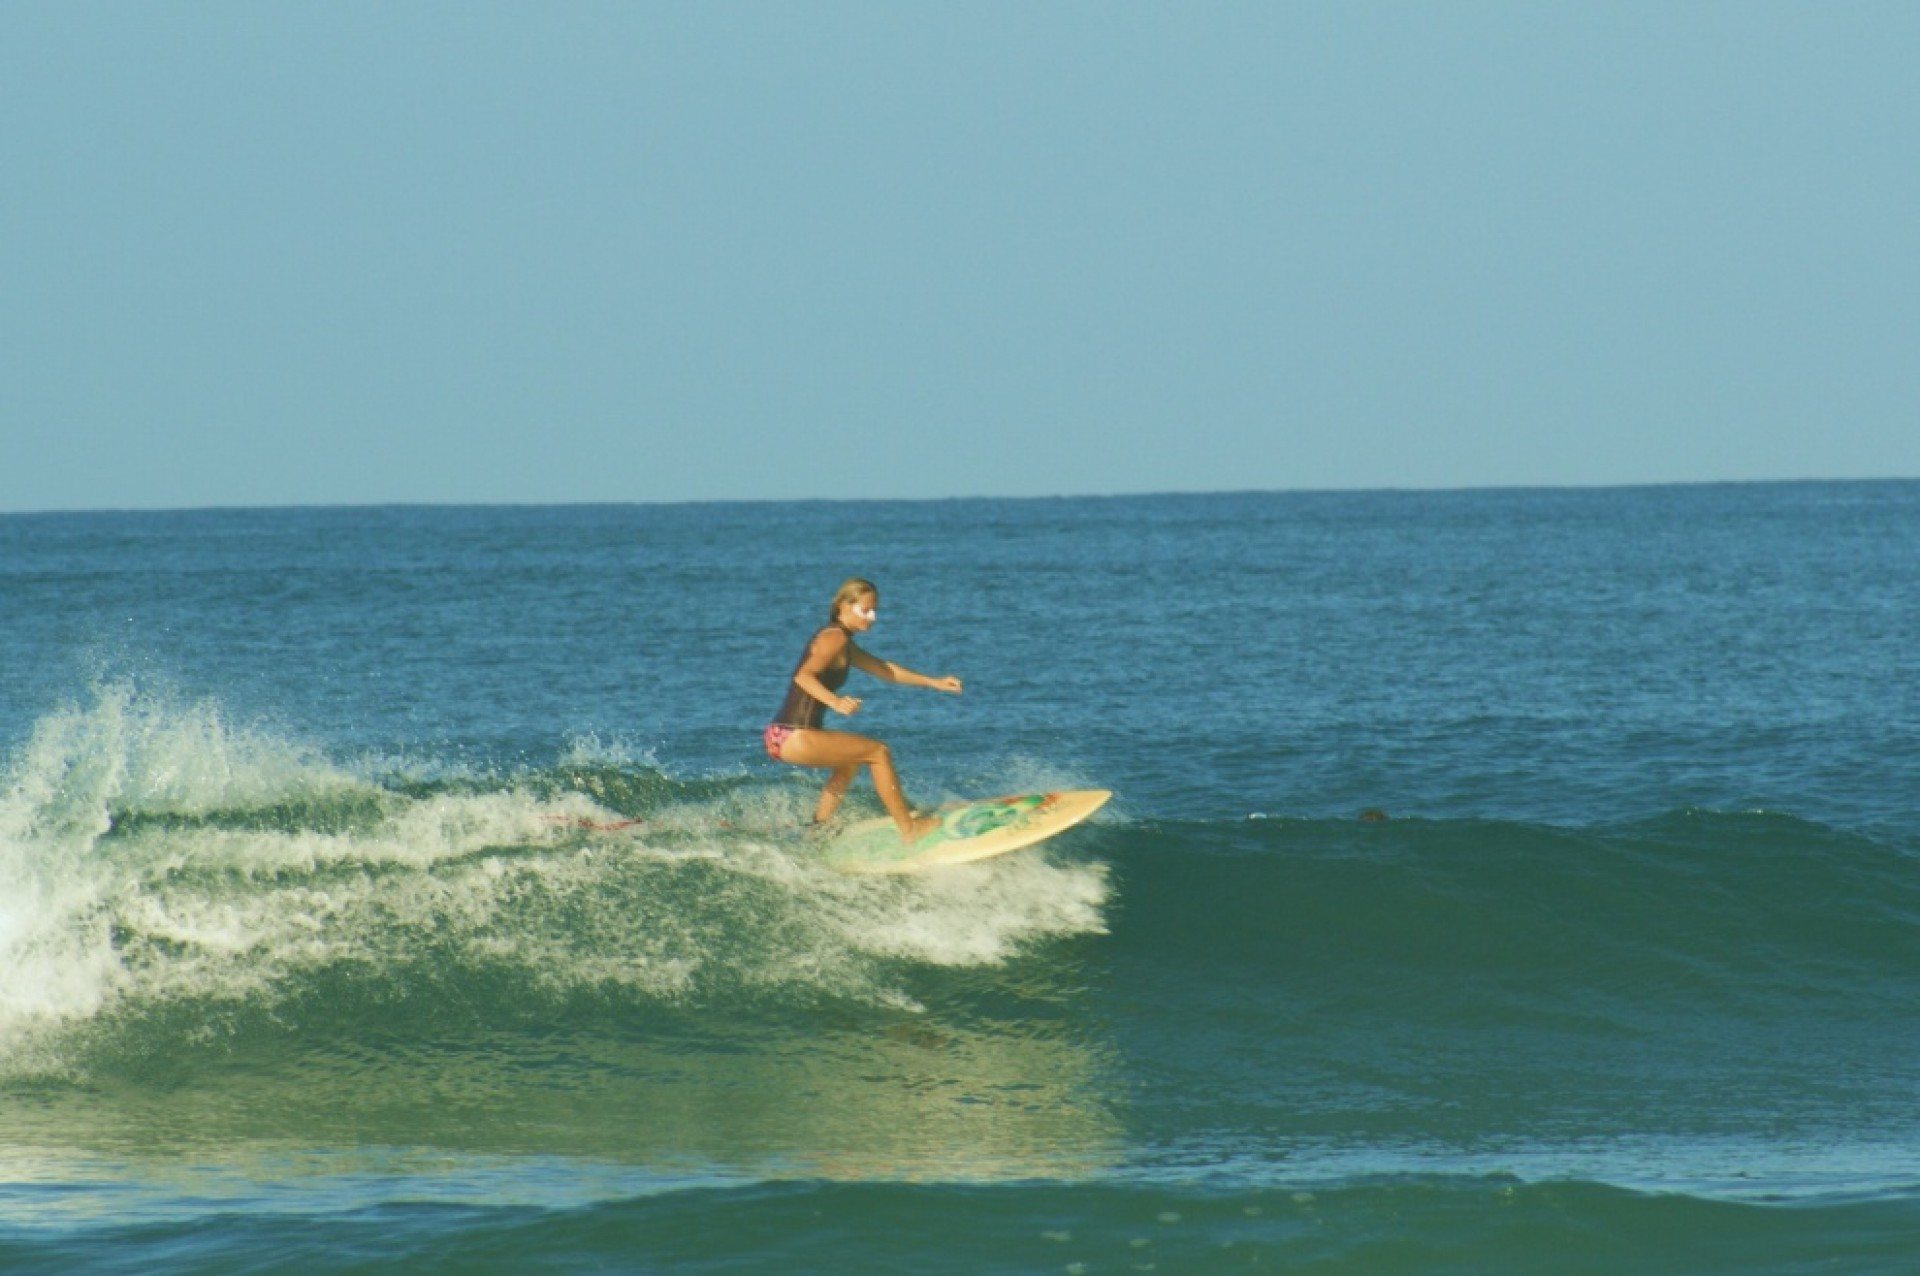 Surf Eve's photo of Avellana